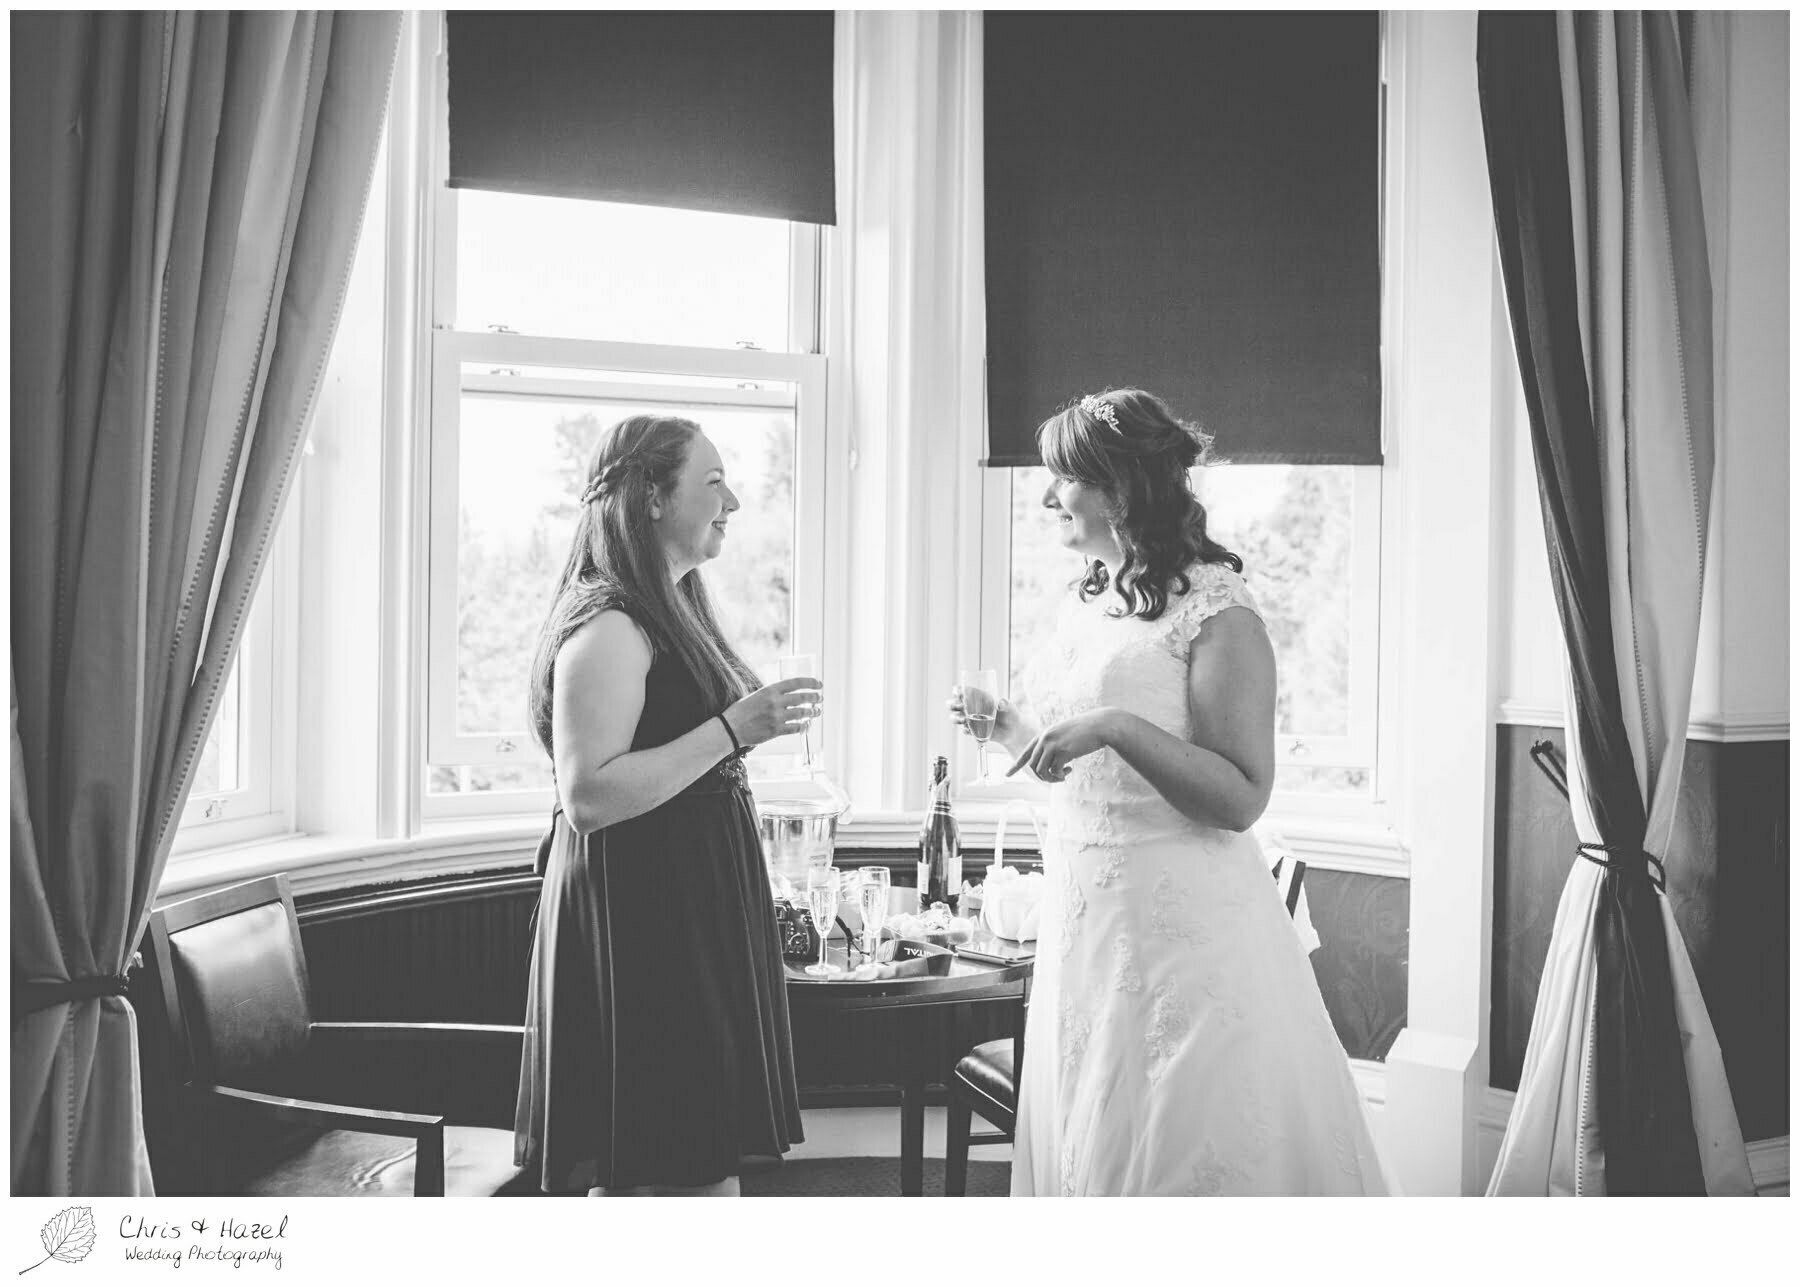 bridal preparations, bridal party getting ready, Ilkley wedding photographer, Ilkley wedding photography, The Craiglands hotel wedding photography, west Yorkshire wedding photography, chris and hazel wedding photography, emily nunwick, sam nicholson, emily nicholson,